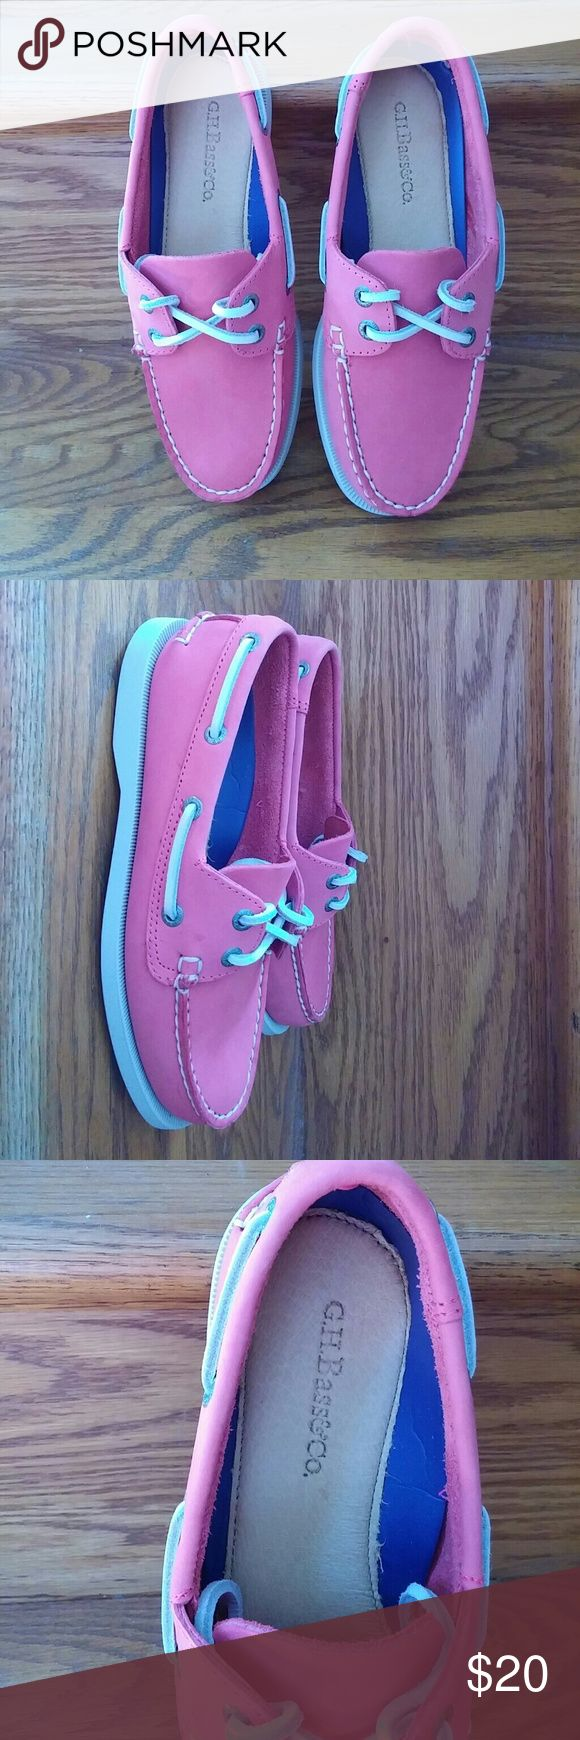 NIB pink leather boat shoes Never worn gorgeous boat shoes. They are super comfortable and a great color. Shoes